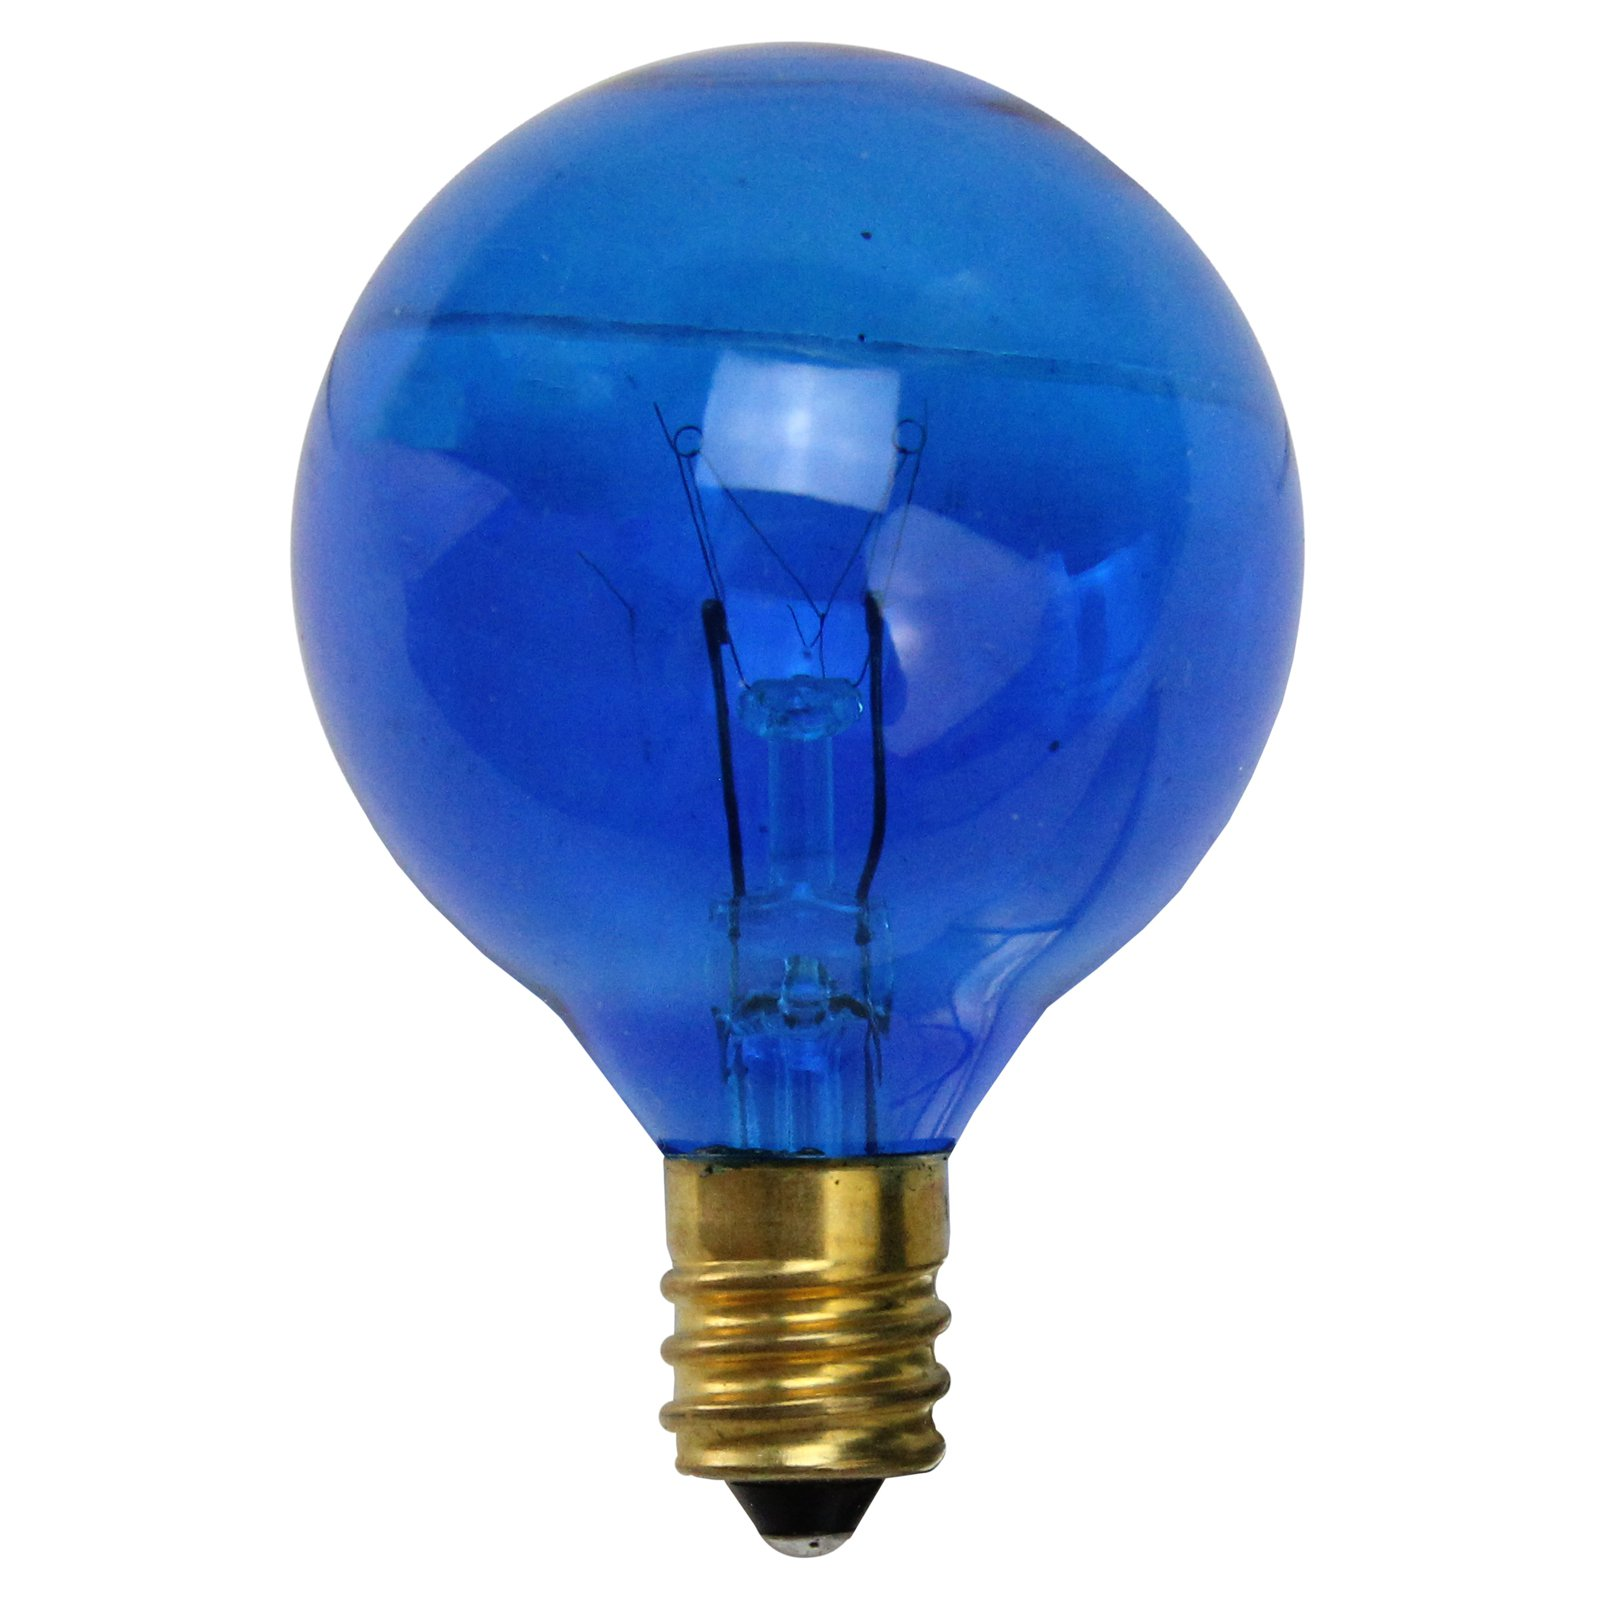 Northlight Incandescent G40 Globe Christmas Replacement Light Bulbs - Set of 25